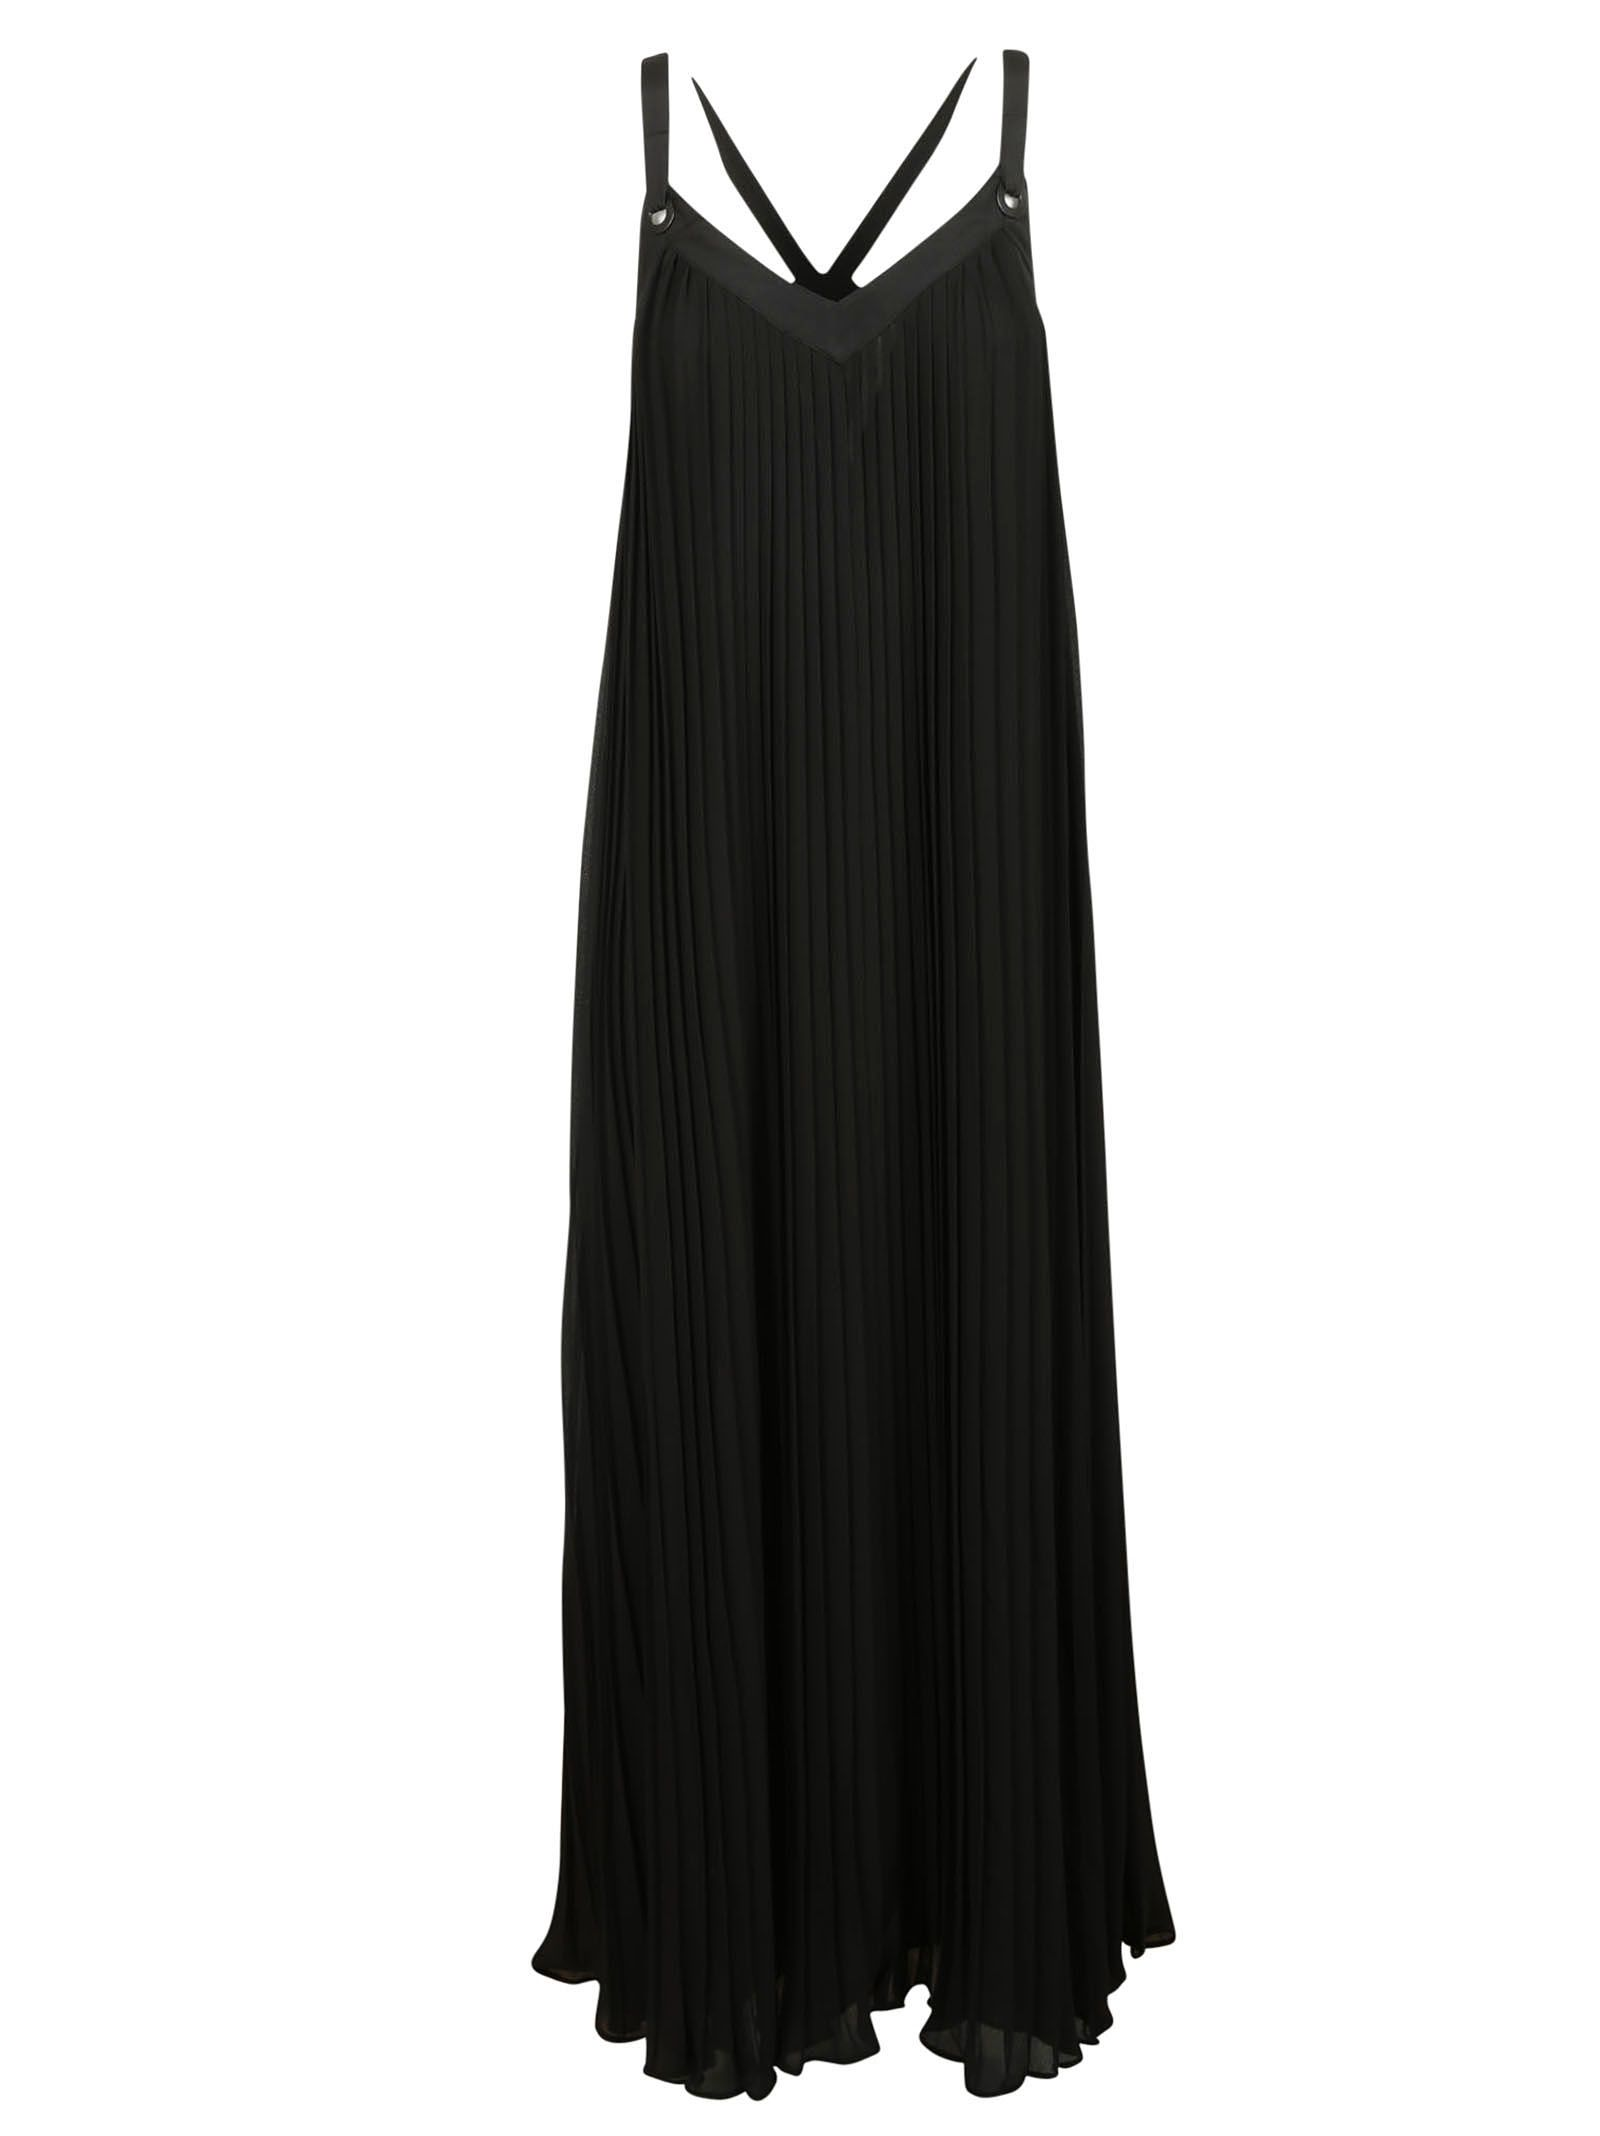 michael kors female 188971 black long dress